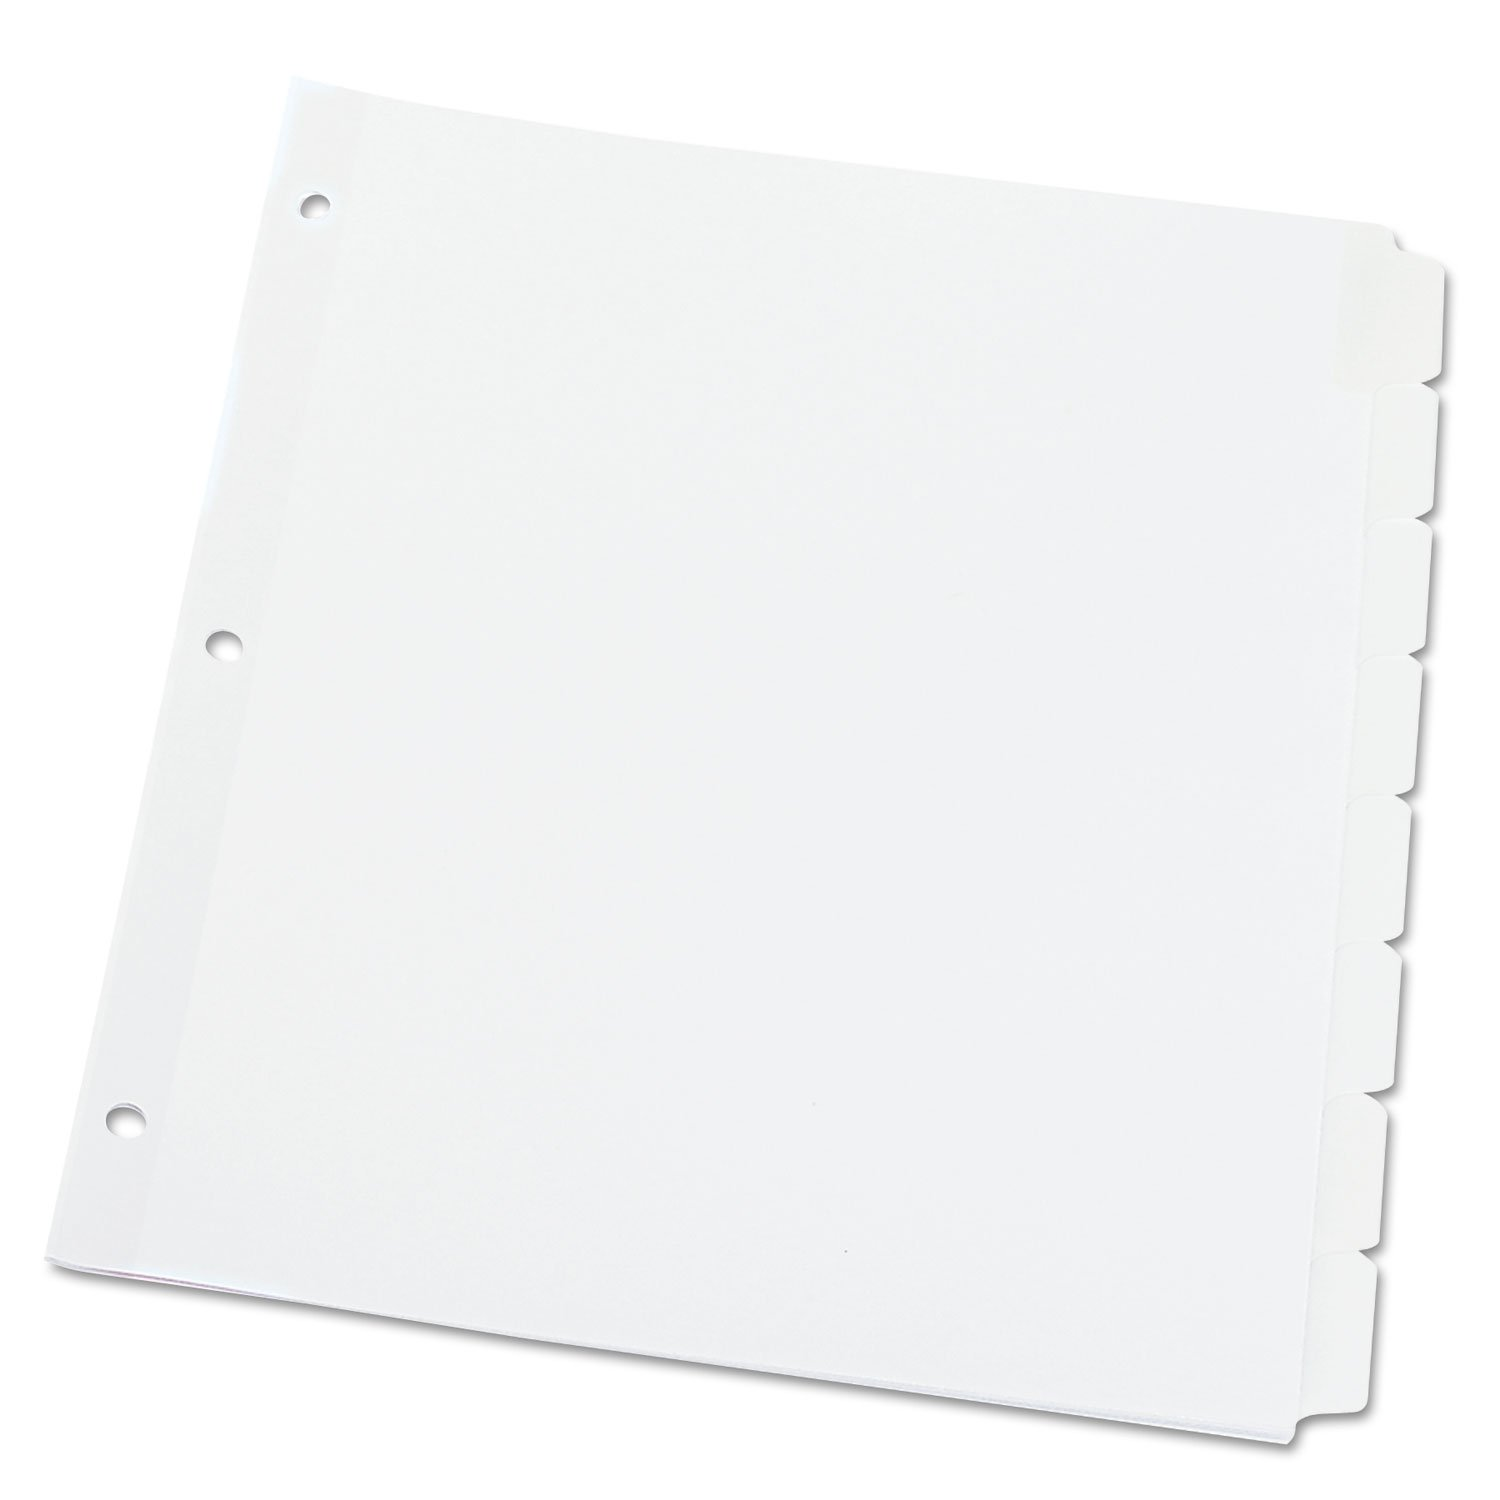 Universal 20818 Write-On/Erasable Indexes, Eight White Tabs, Letter, White UNIVERSAL OFFICE PRODUCTS